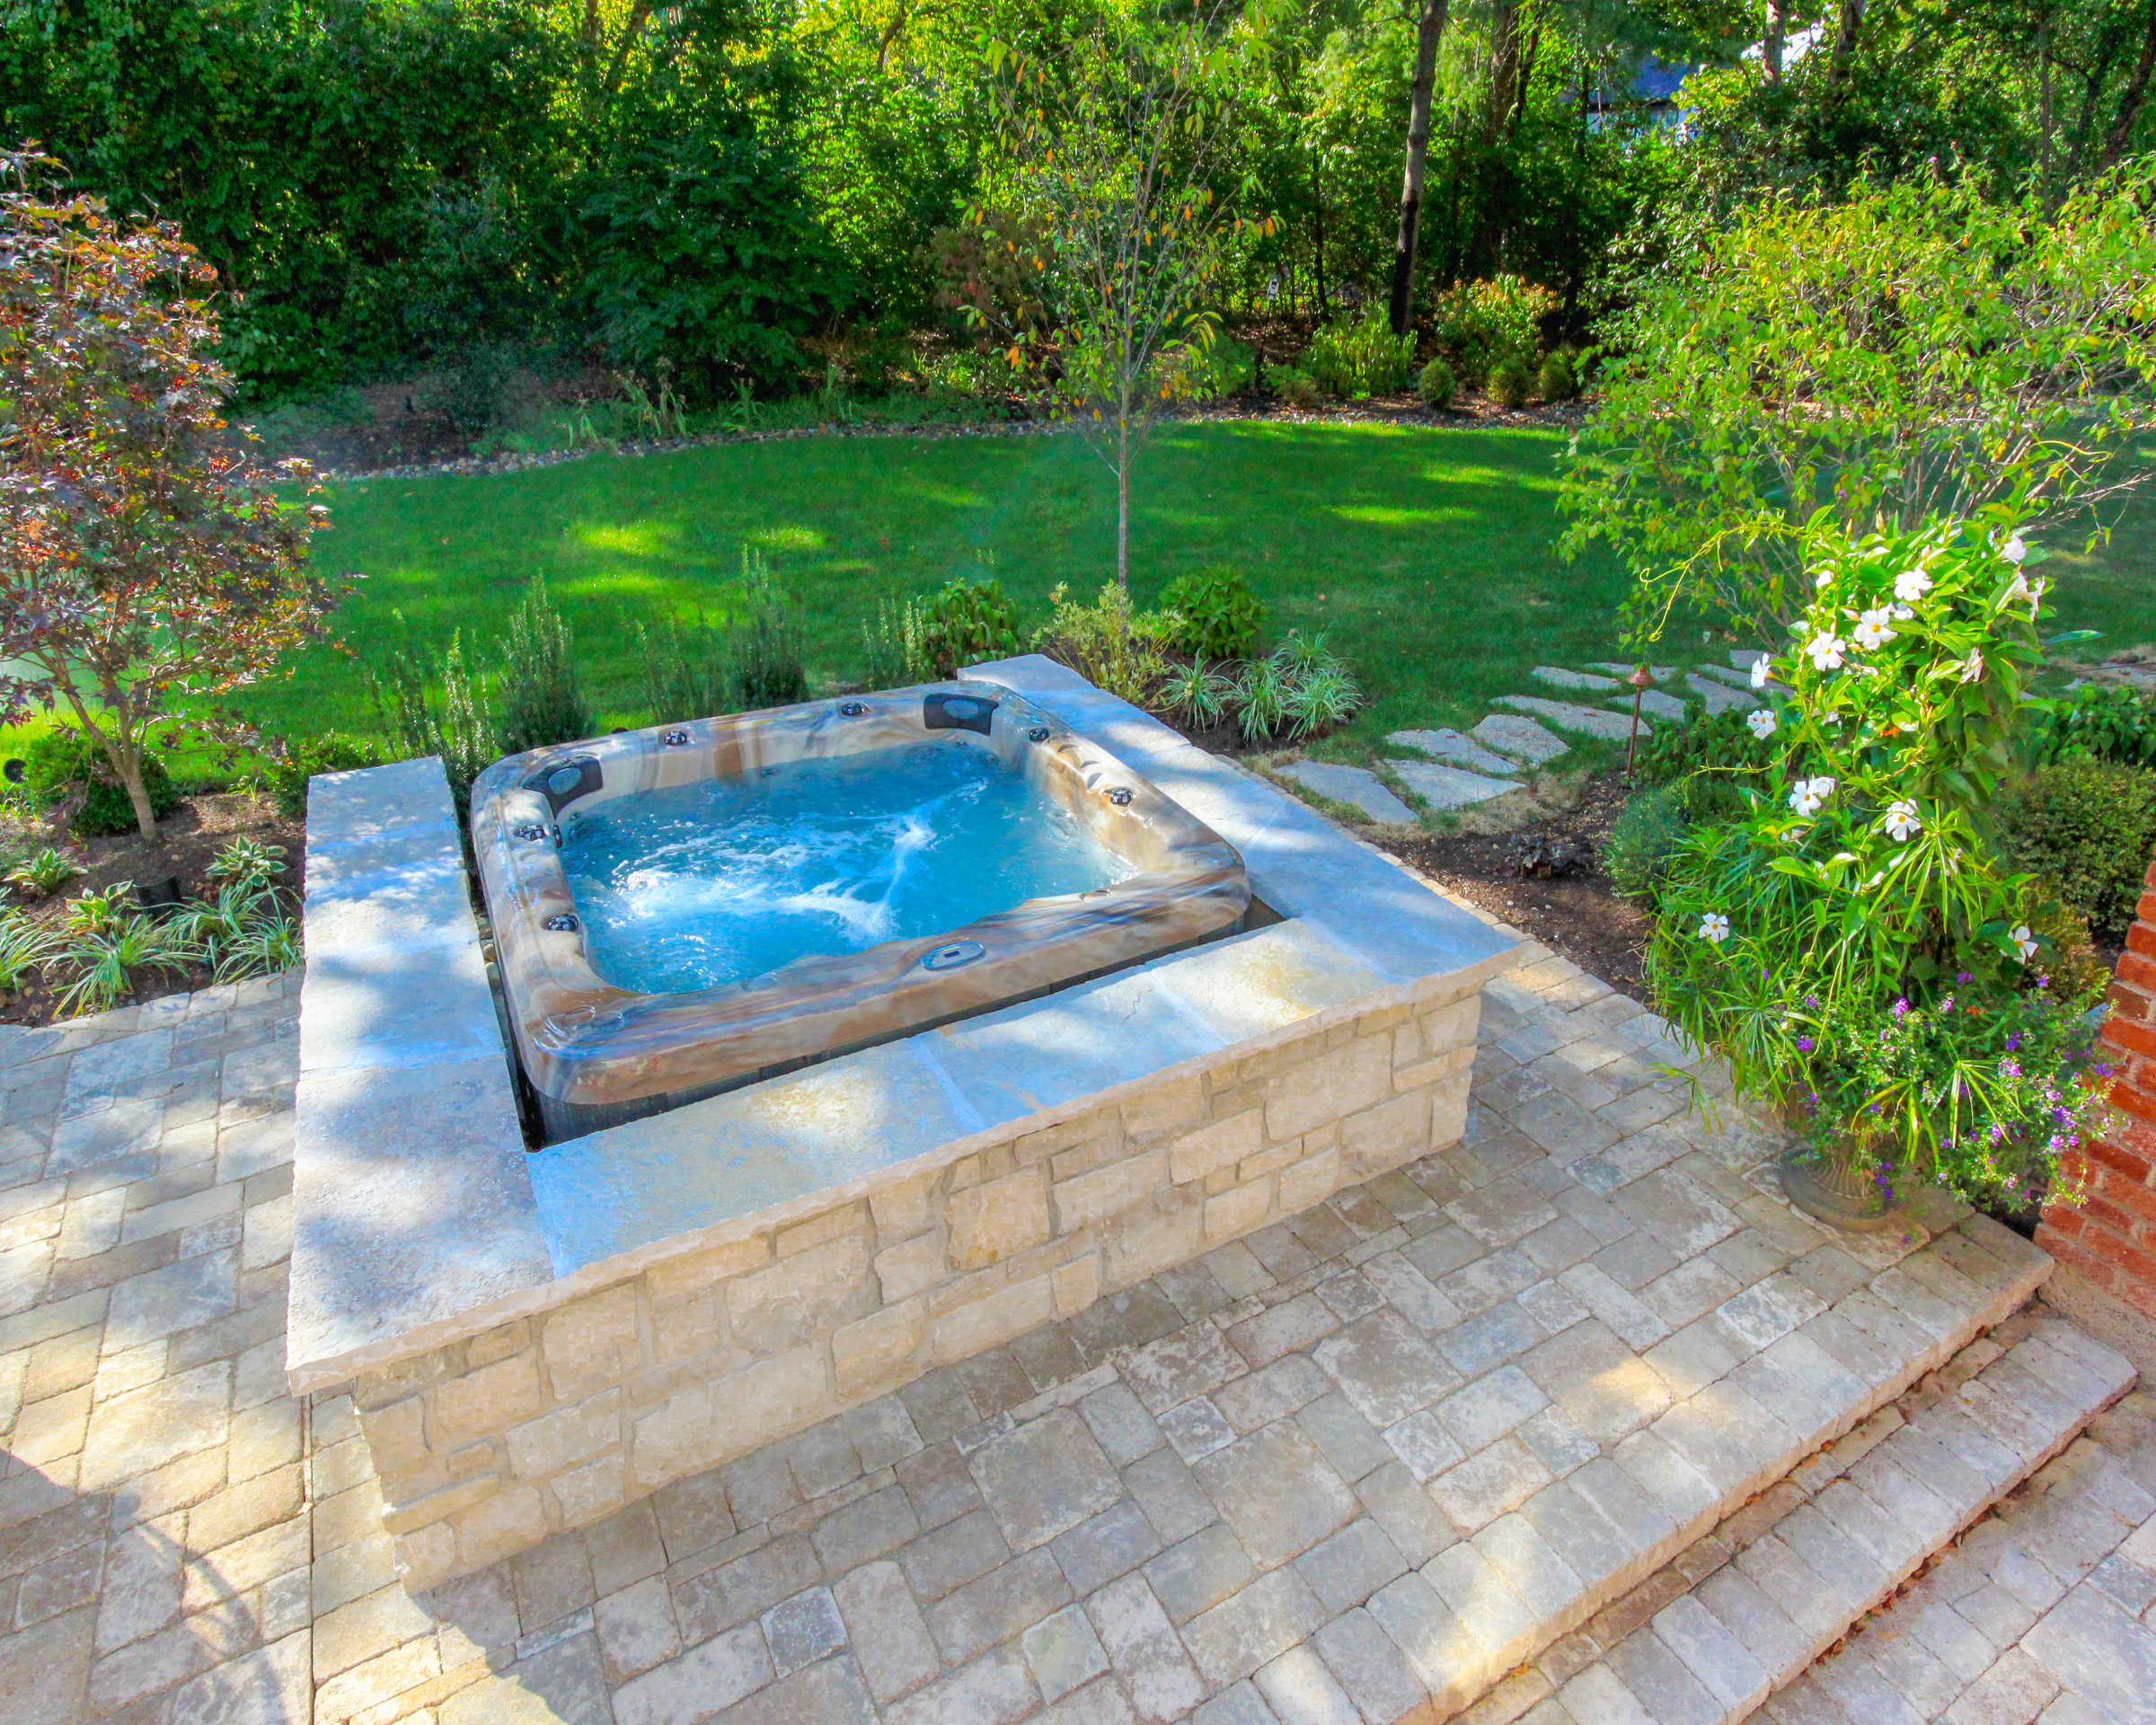 Prestige Pools Amp Spas St Louis Pools Hot Tubs Swim Spas